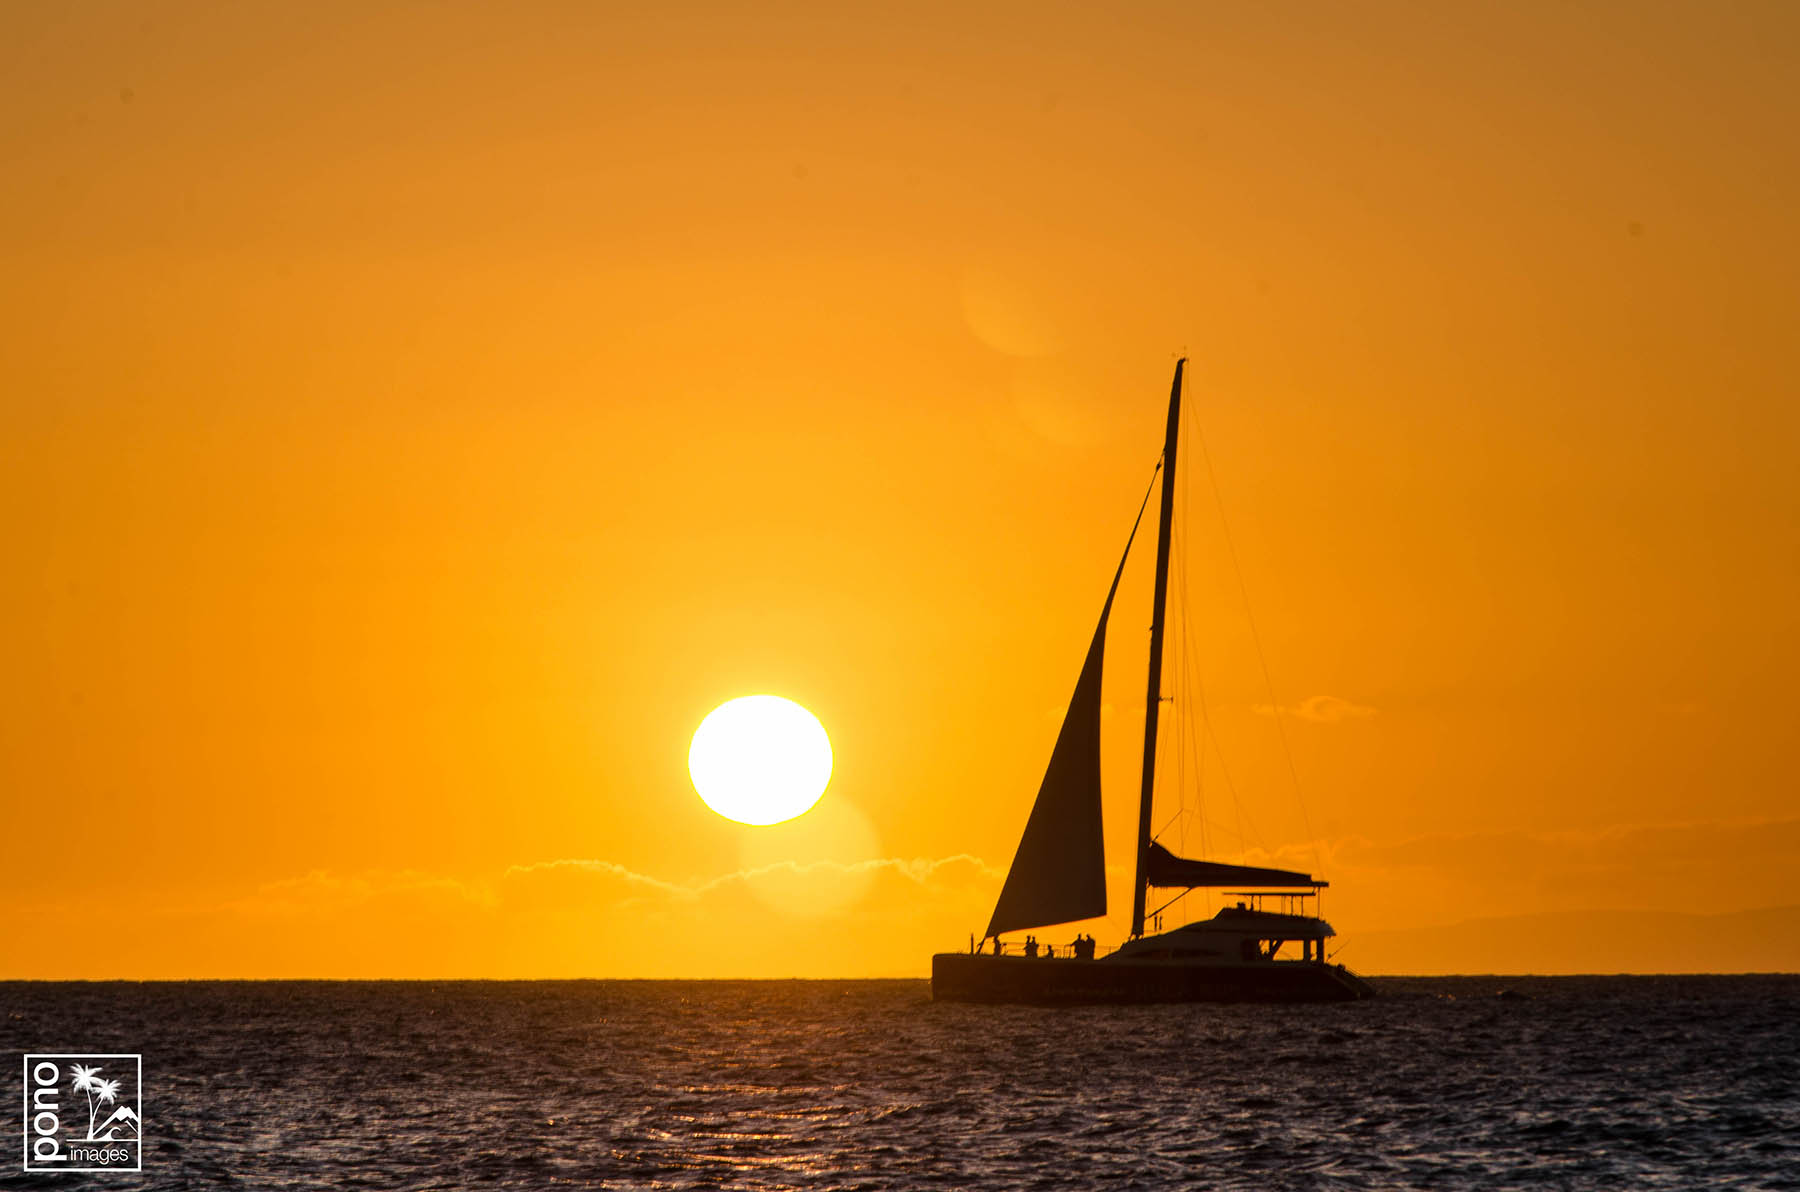 Into The Sunset - Maui, HI | Pono Images